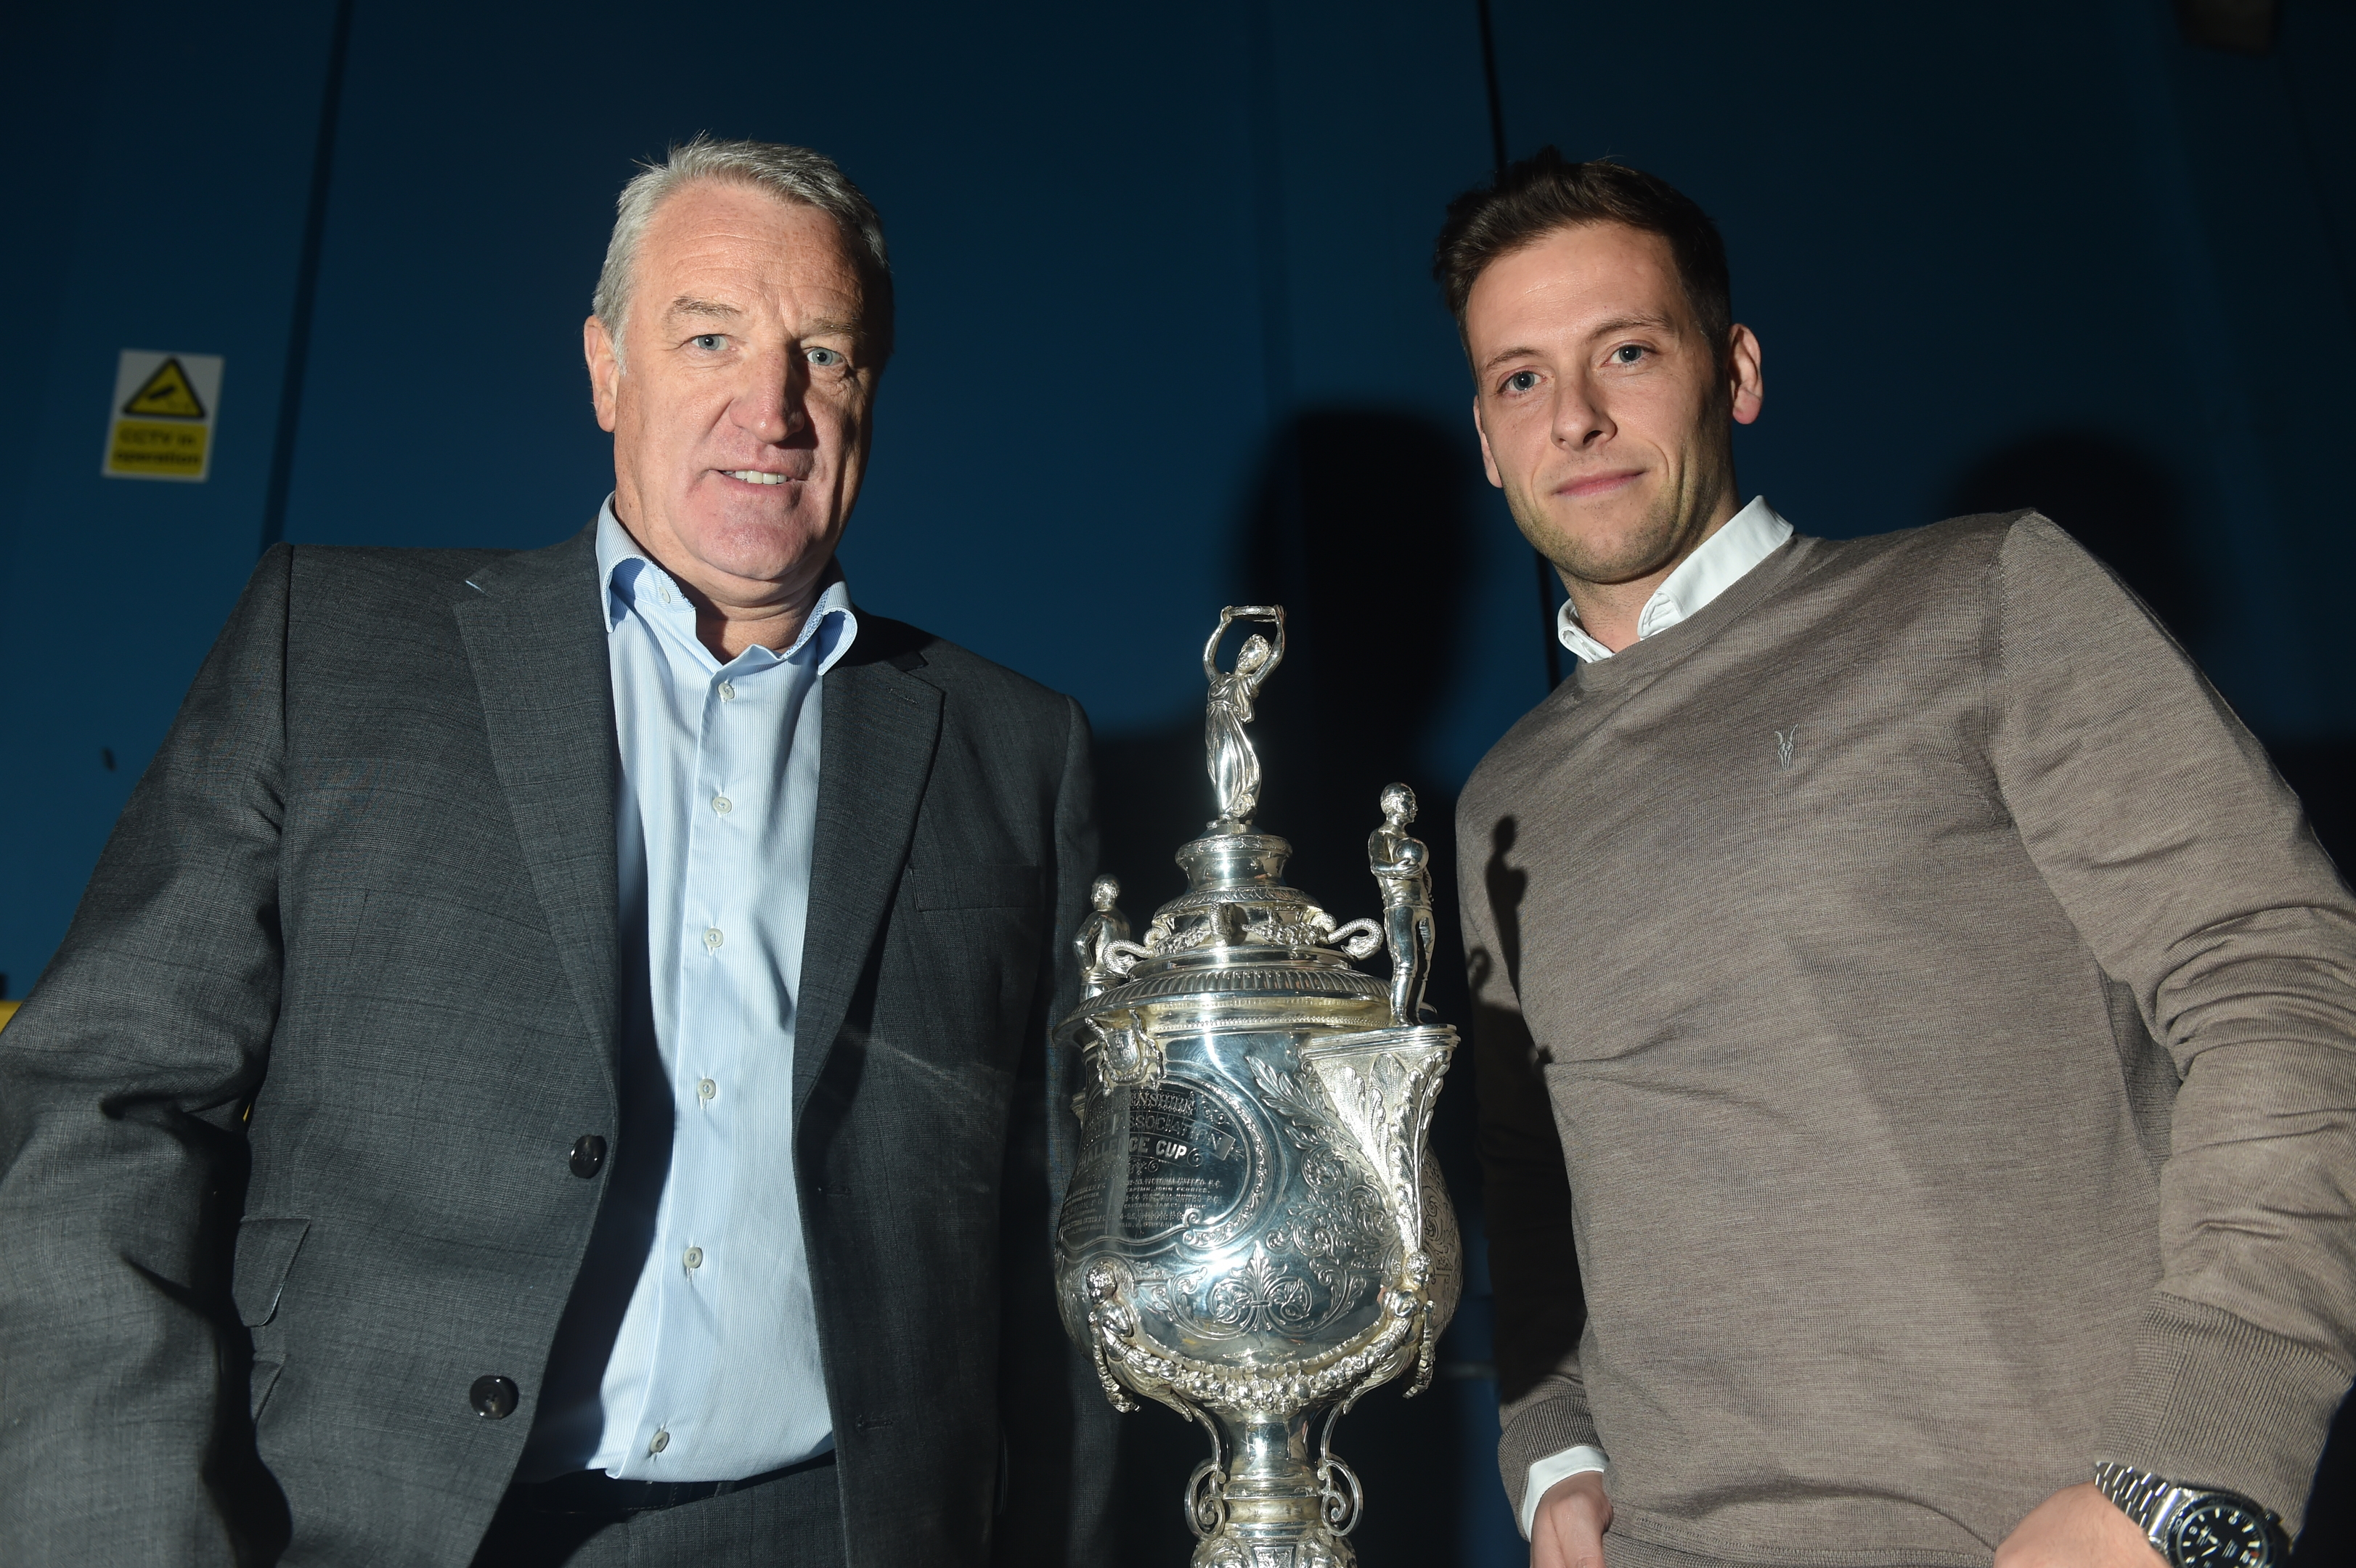 John Sheran, left, and Paul Lawson with the cup.